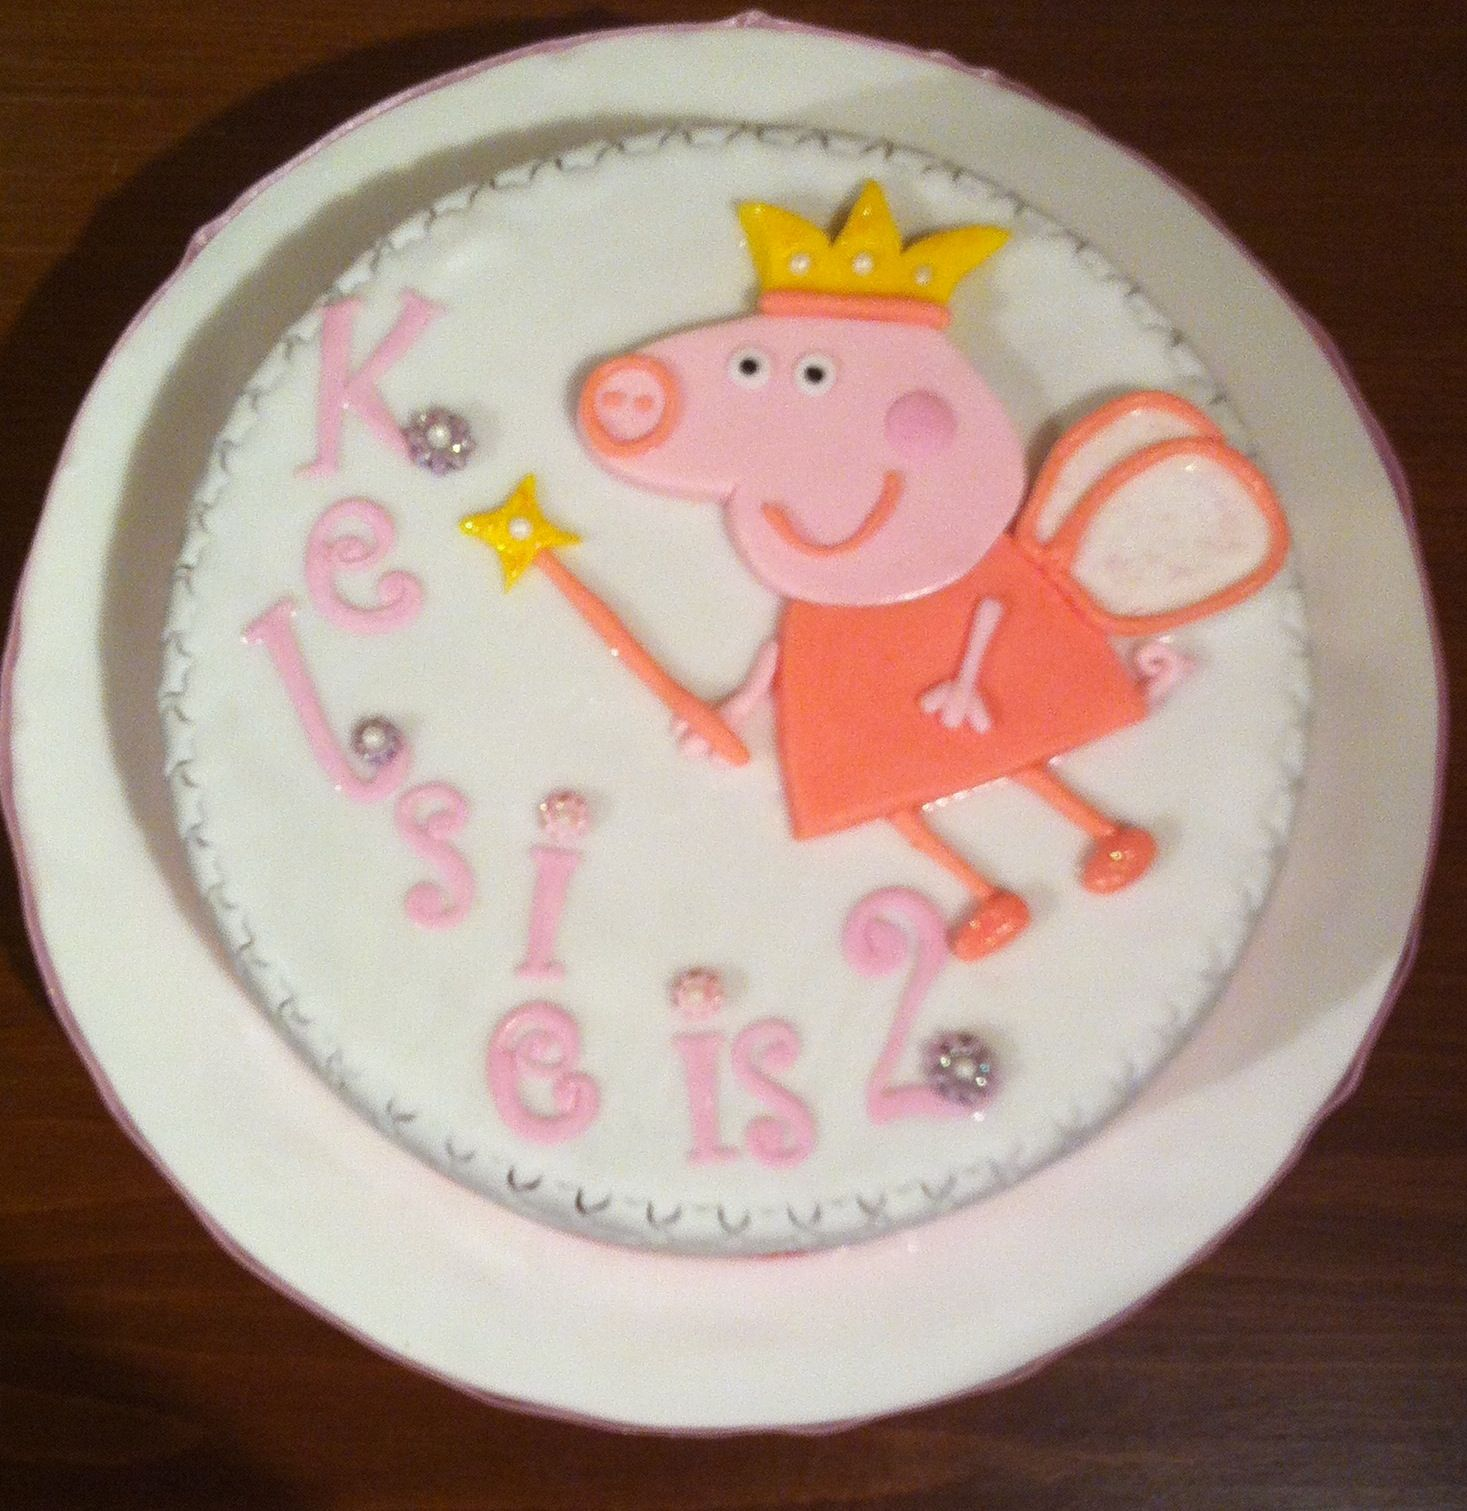 Peppa Pig Birthday Cake Sainsbury